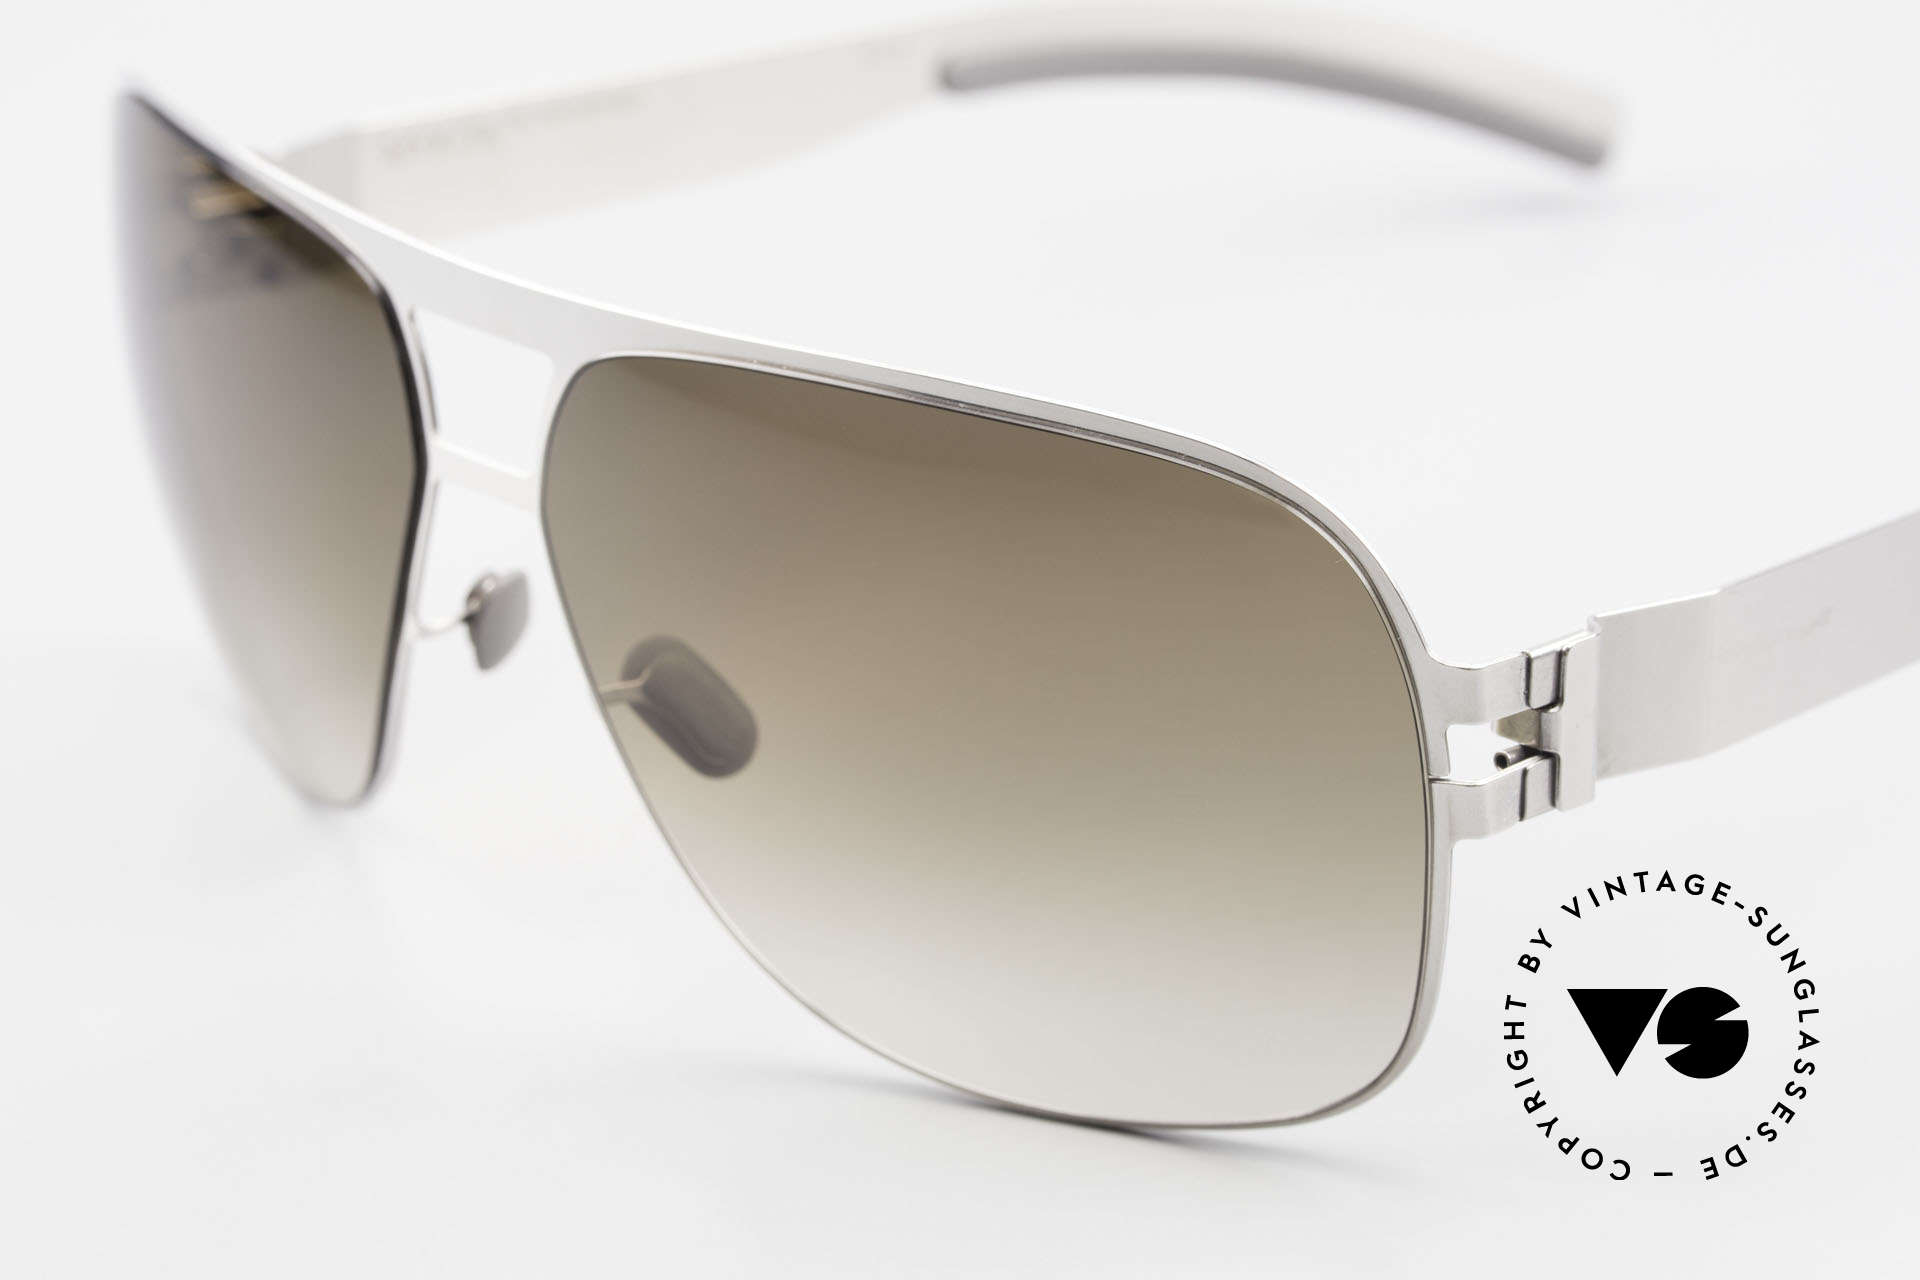 Mykita Clifford 2000's Vintage Aviator Shades, innovative and flexible metal frame = One size fits all!, Made for Men